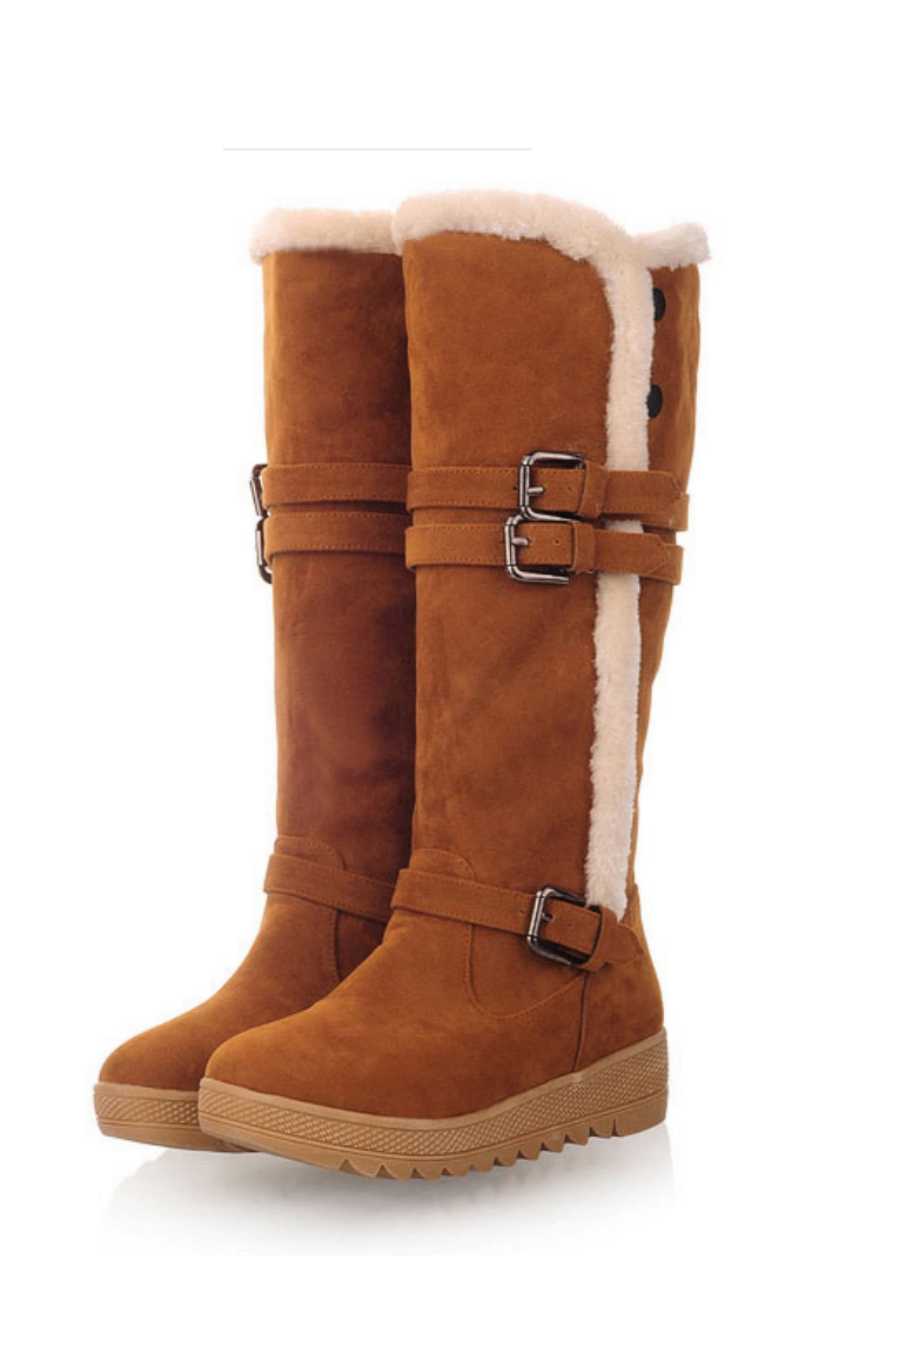 Buckle High Snow Boots In Brown